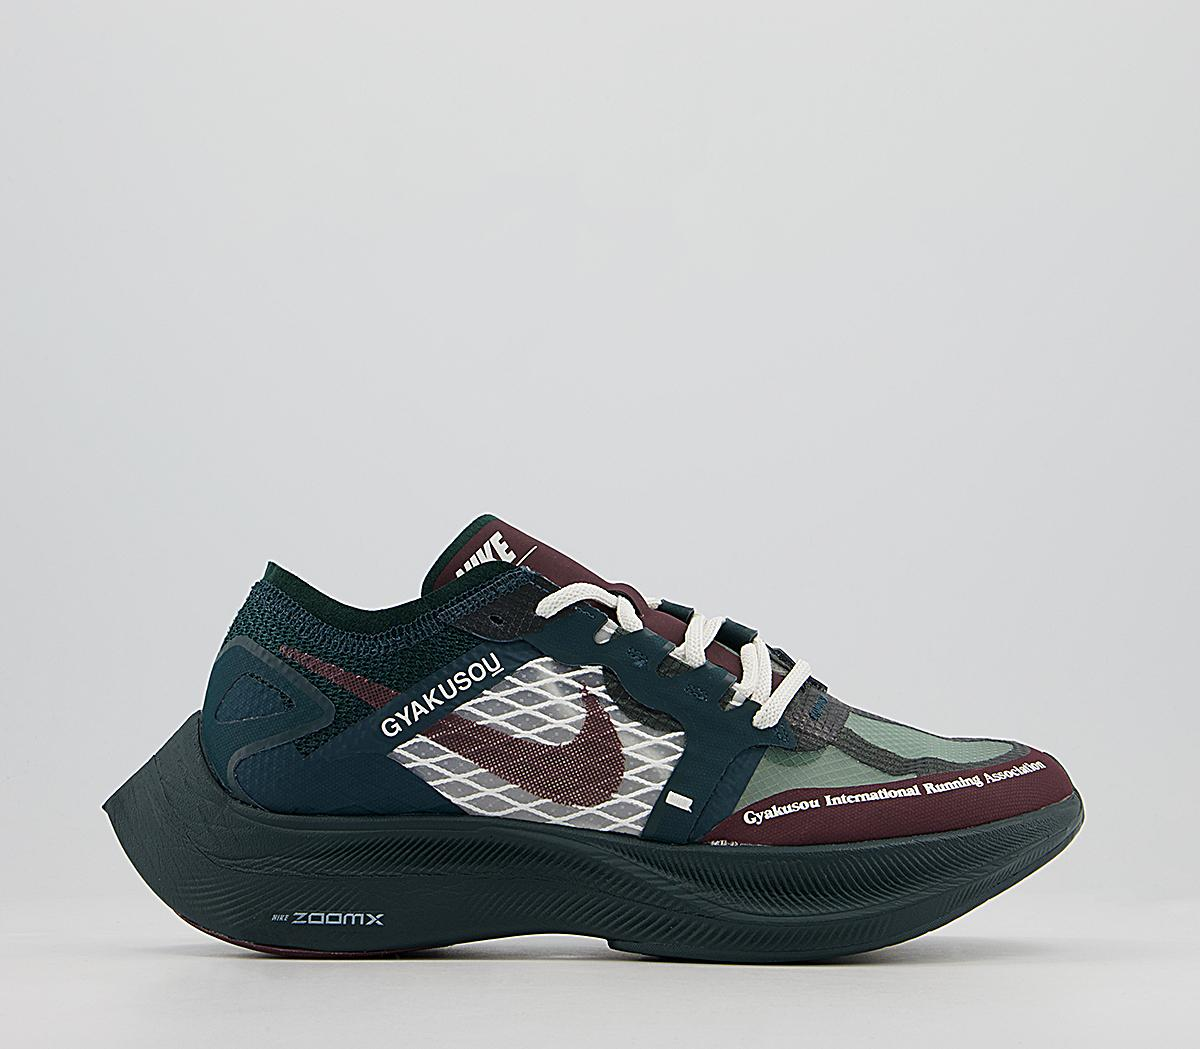 Zoomx Vaporfly Trainers